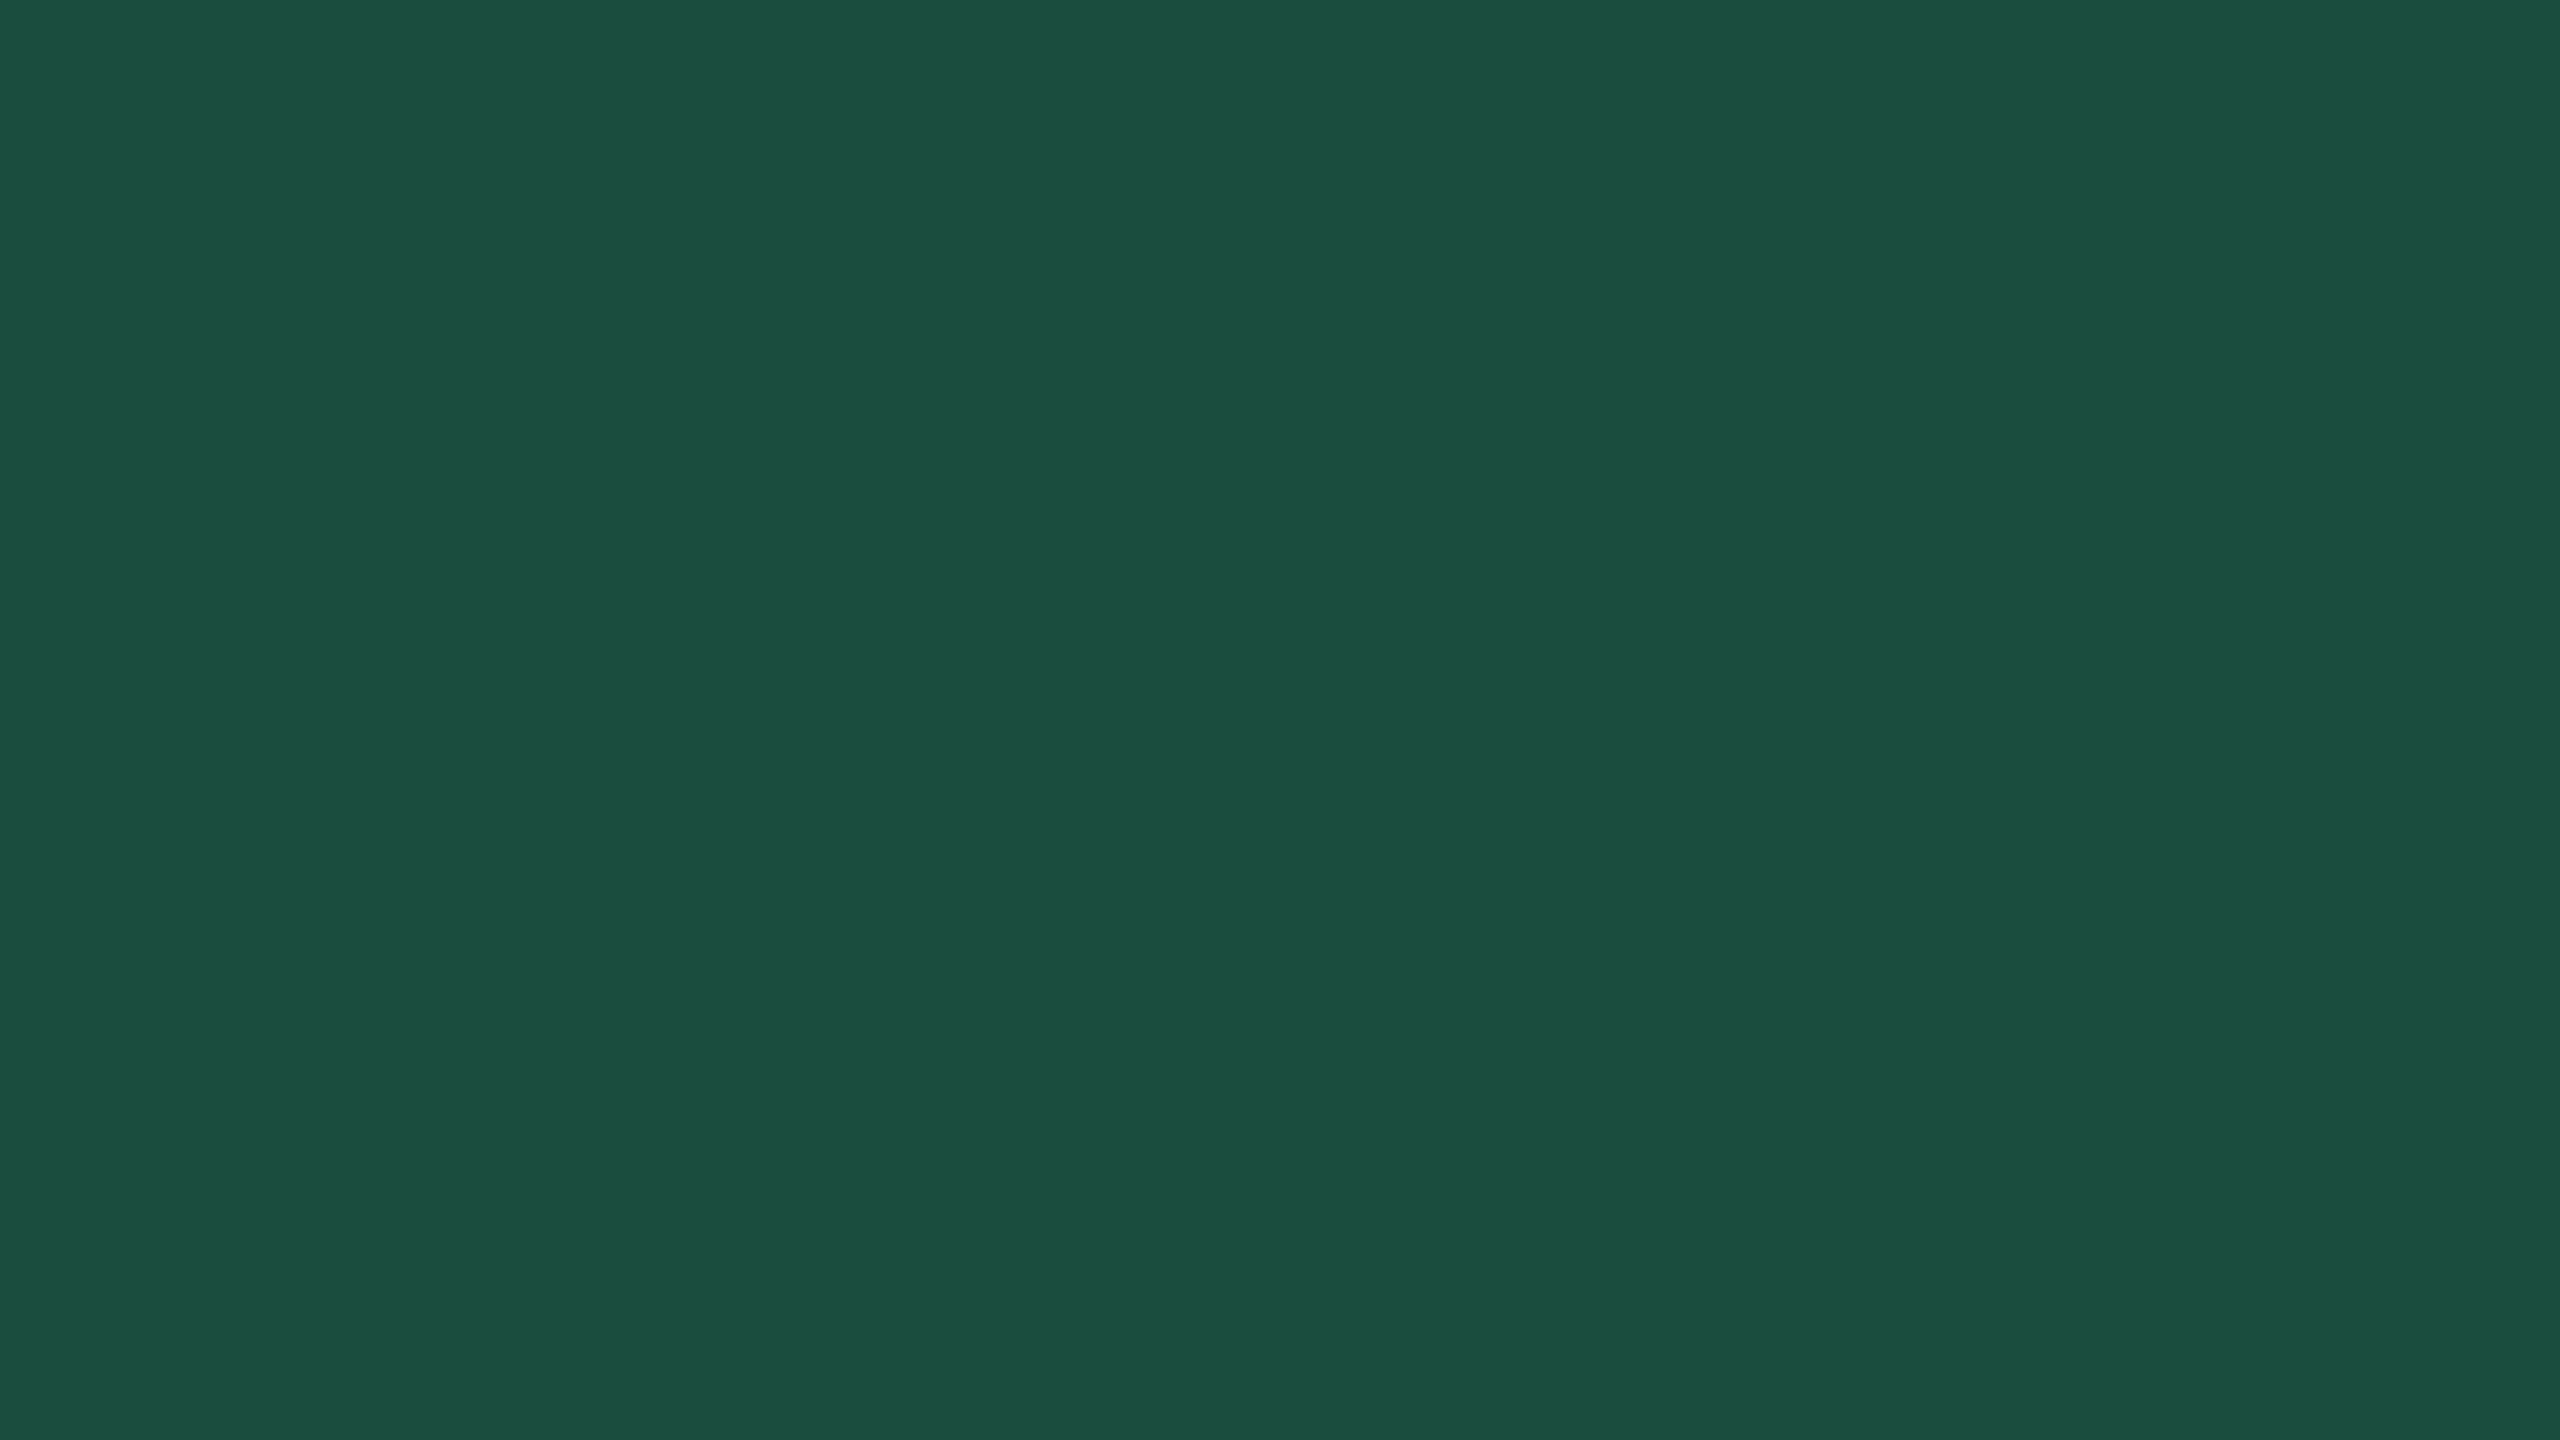 2560x1440 English Green Solid Color Background